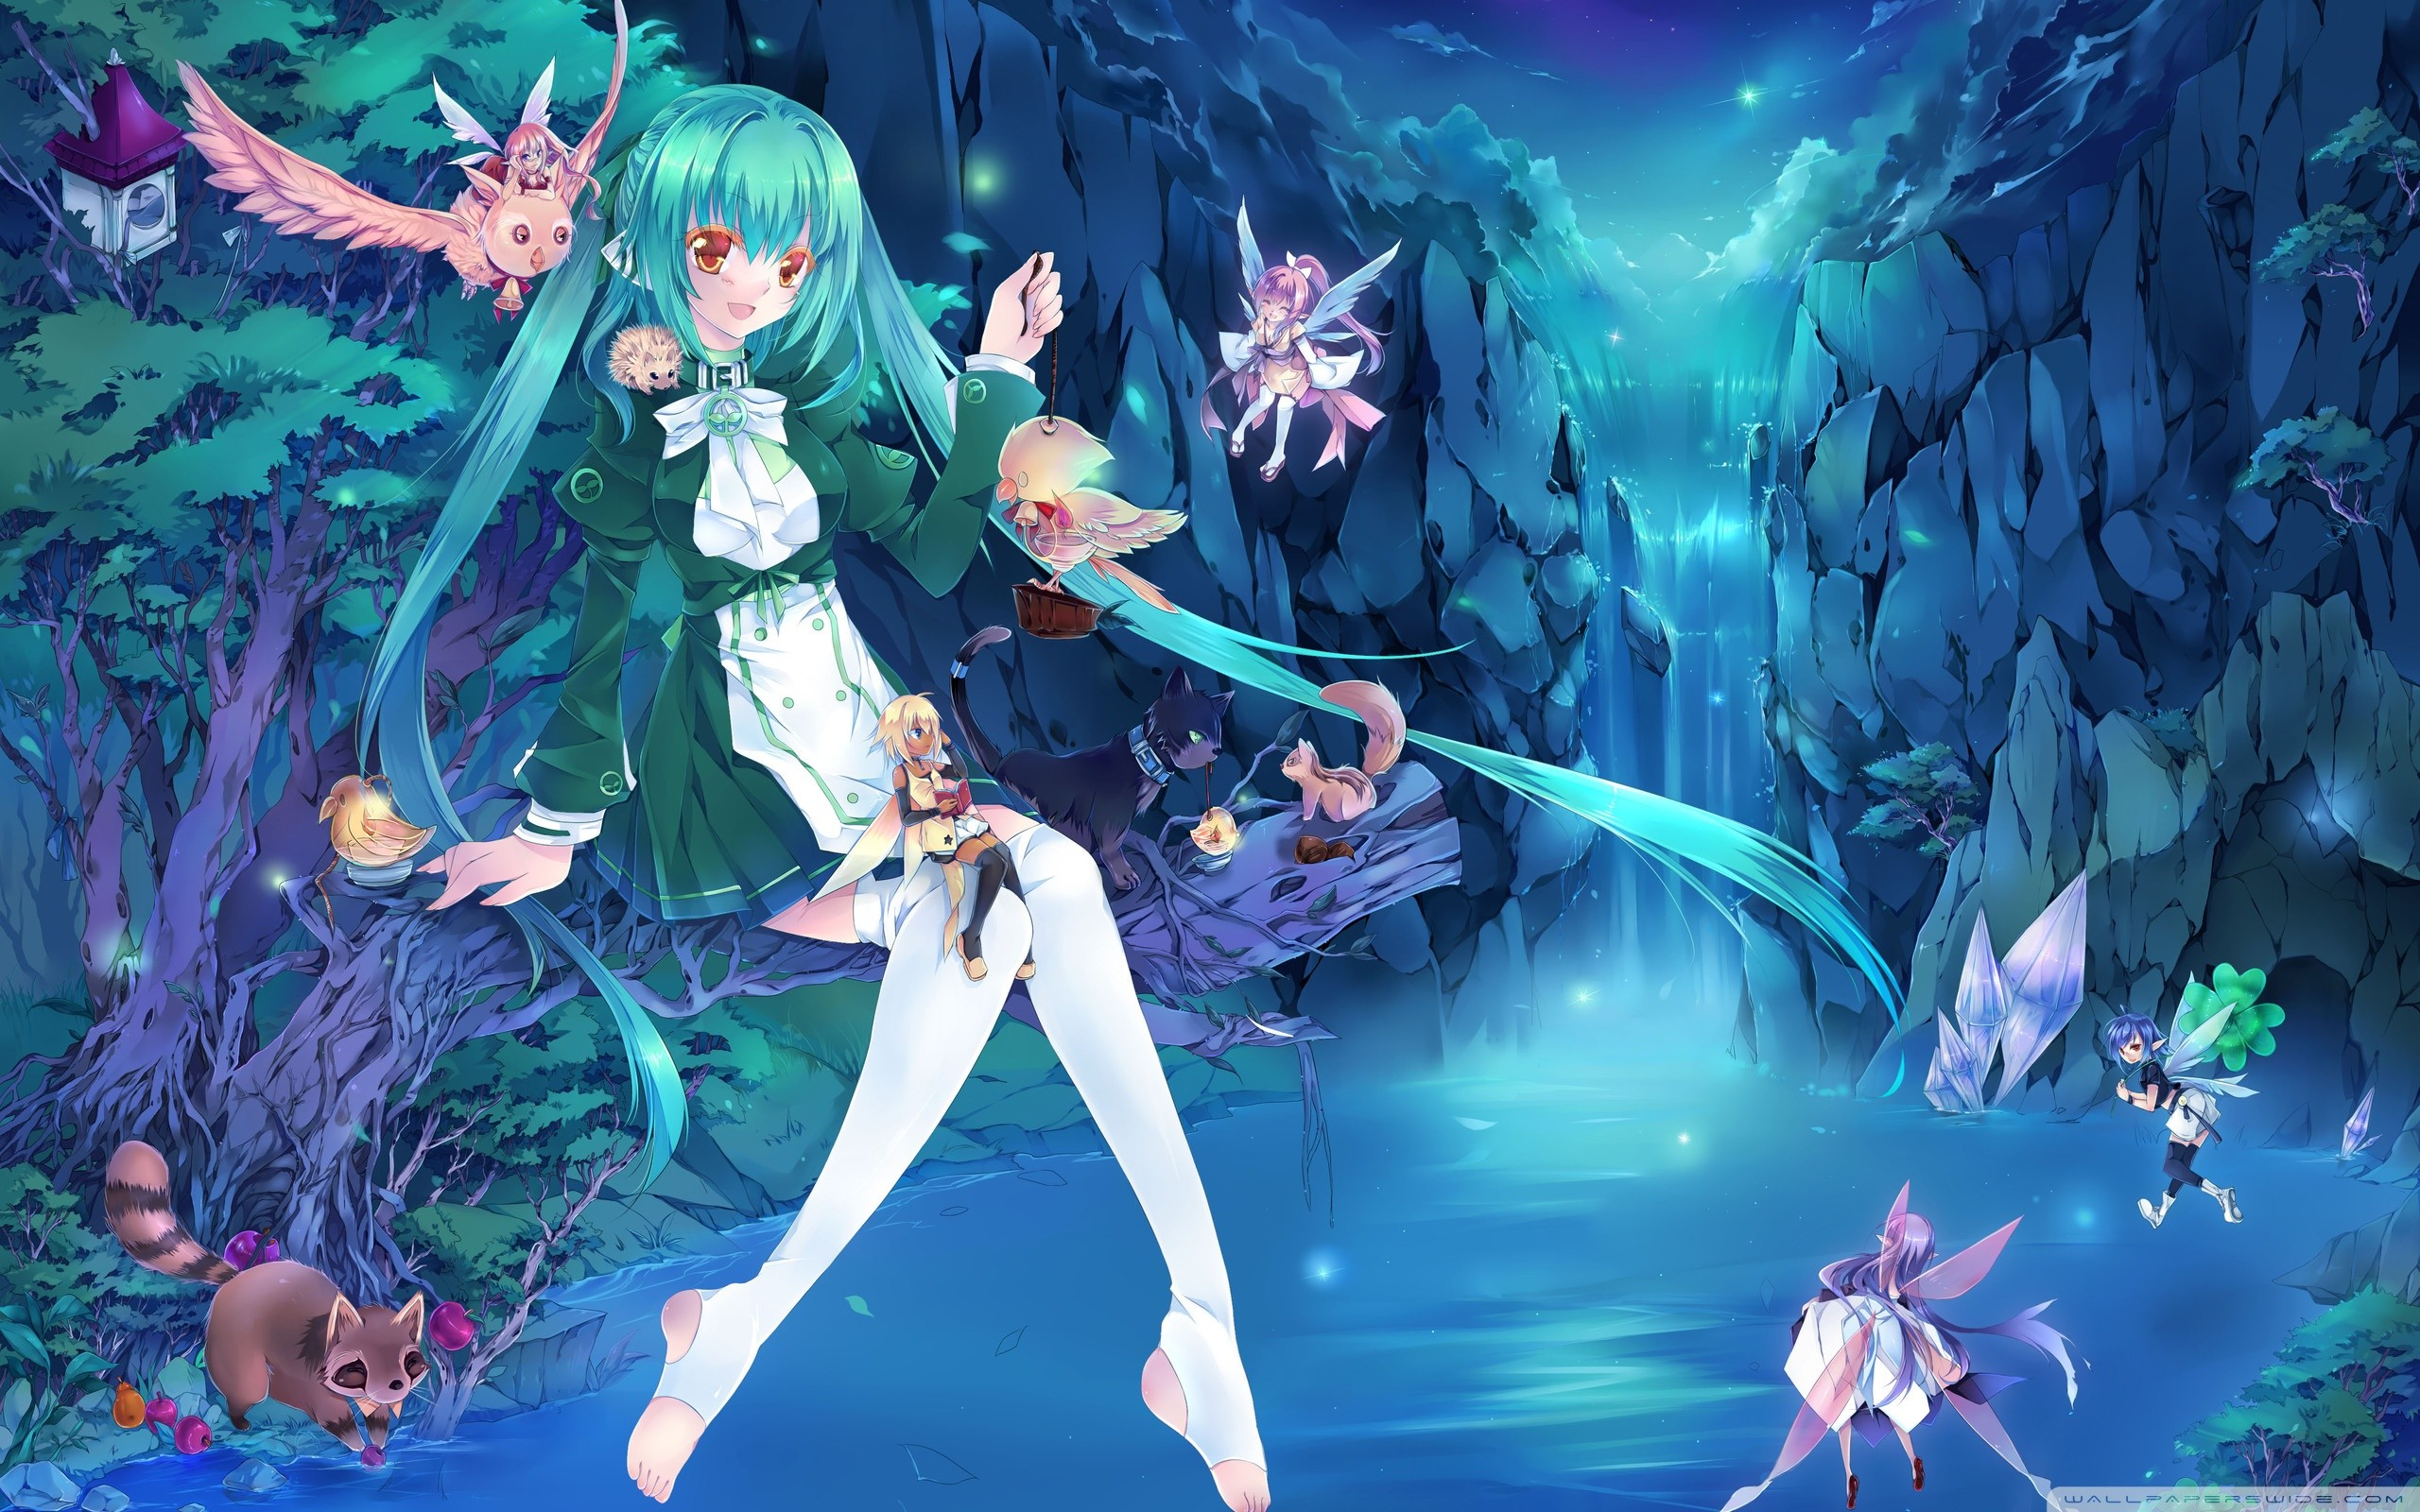 Fairy wallpapers 2560x1600 fighting fairies wallpaper background 27986 thecheapjerseys Images